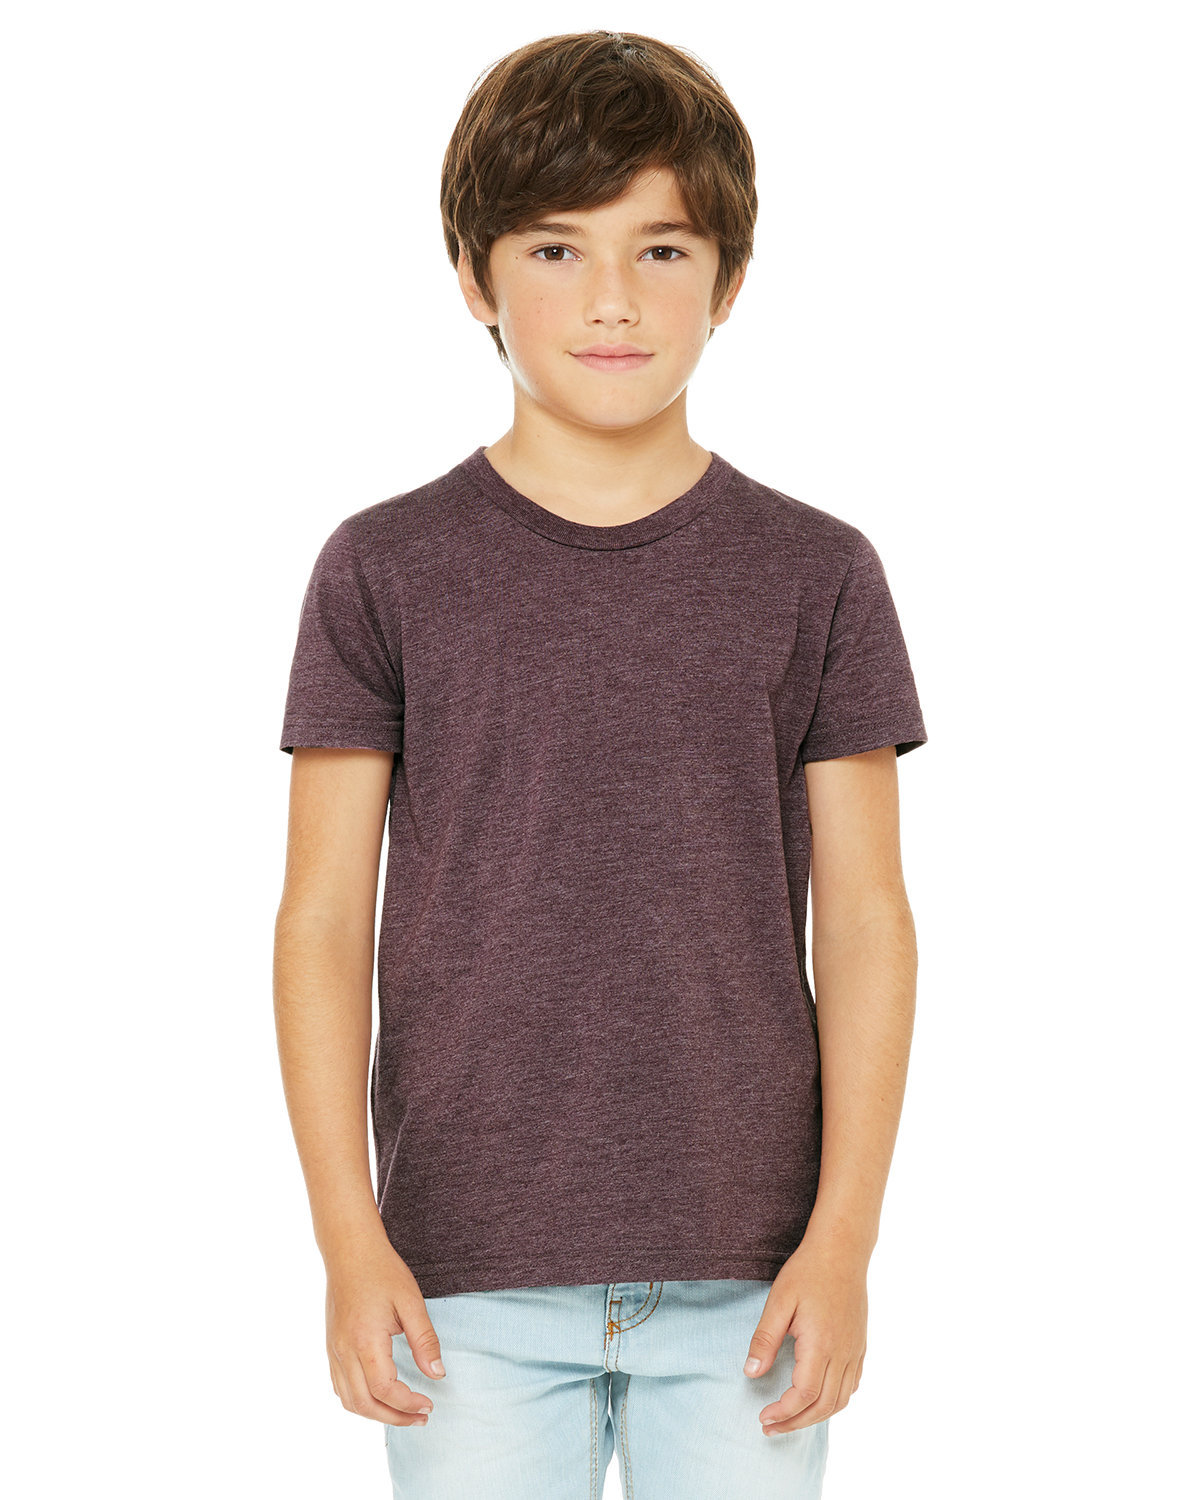 Bella + Canvas Youth Jersey T-Shirt HEATHER MAROON